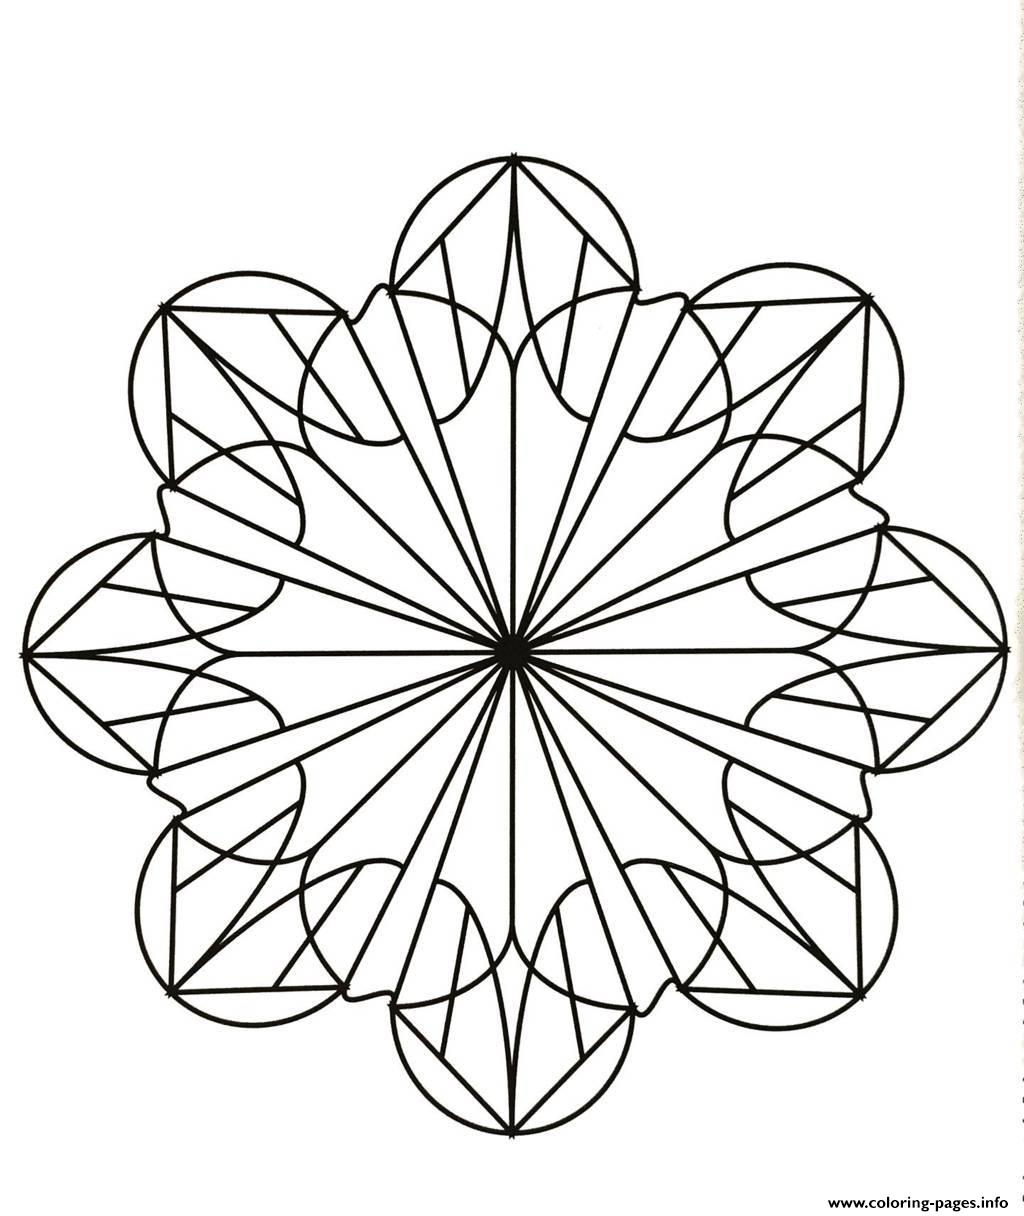 mandalas to download for free 19 coloring pages printable. Black Bedroom Furniture Sets. Home Design Ideas